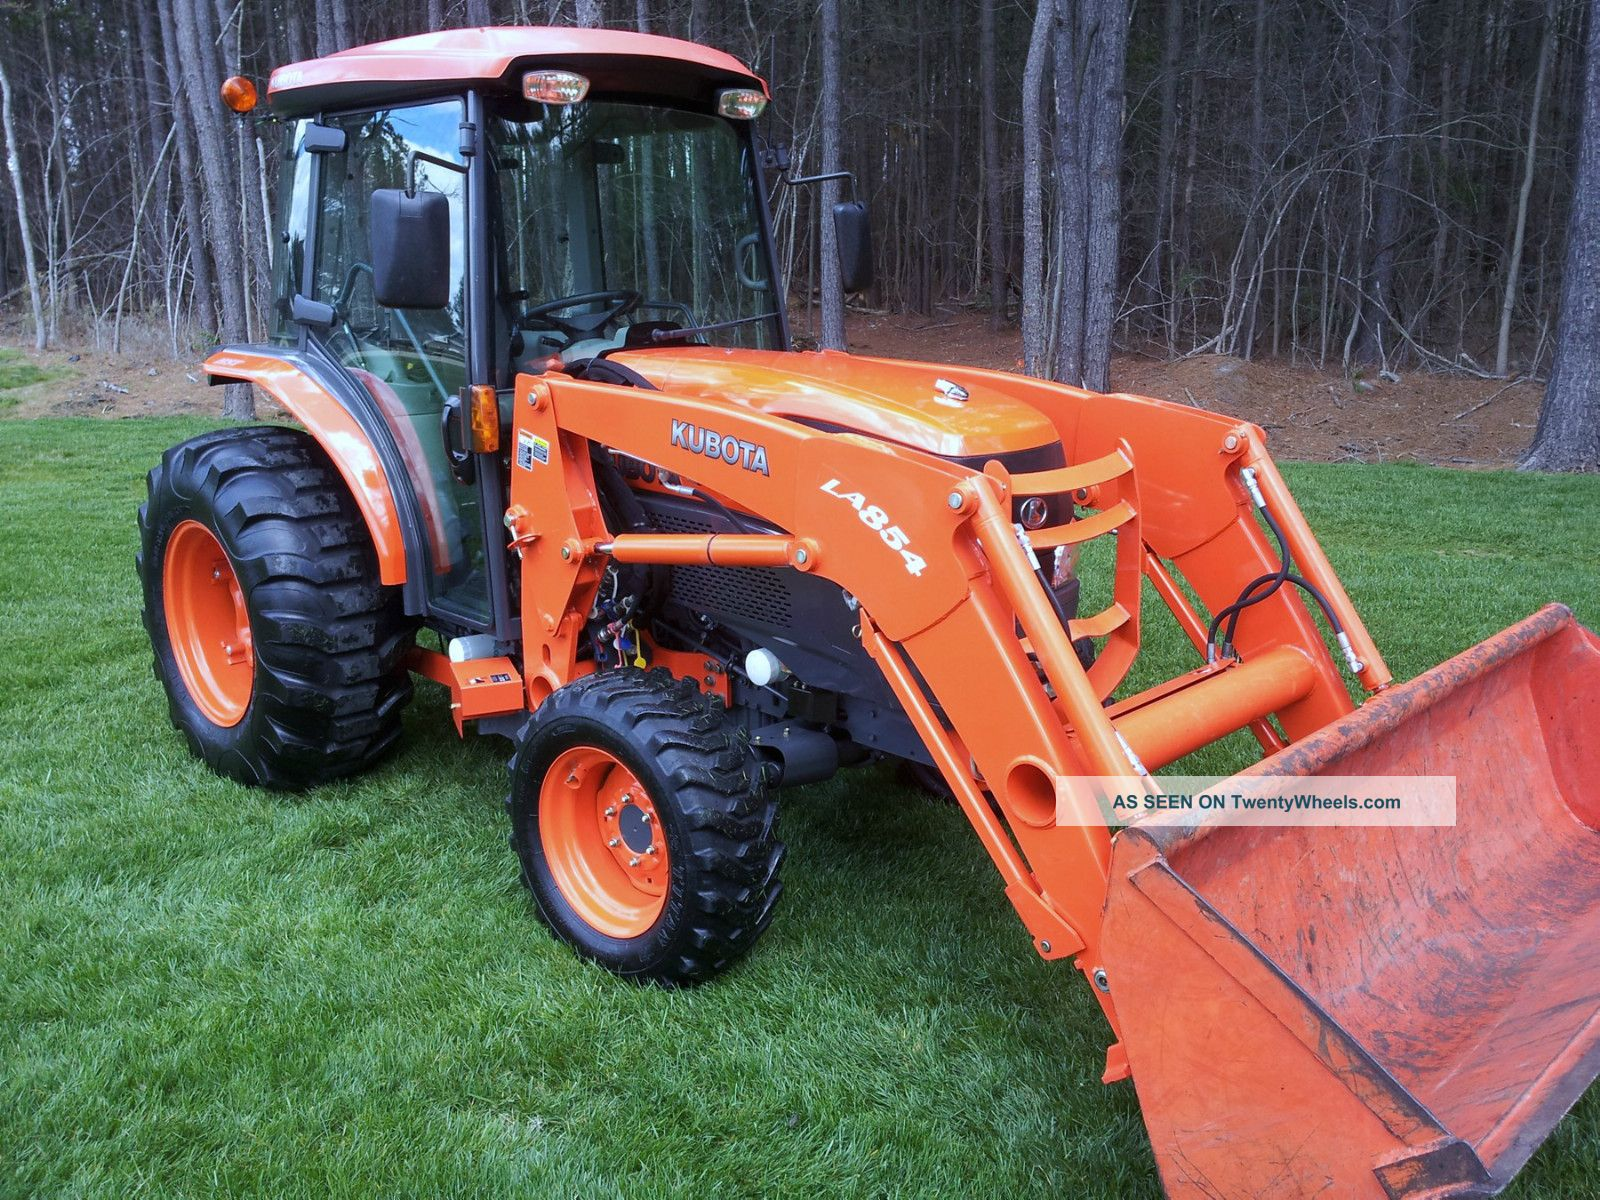 2008 Kubota L5240 Hstc 413 Hours Hydrostatic Transmission Tractors photo